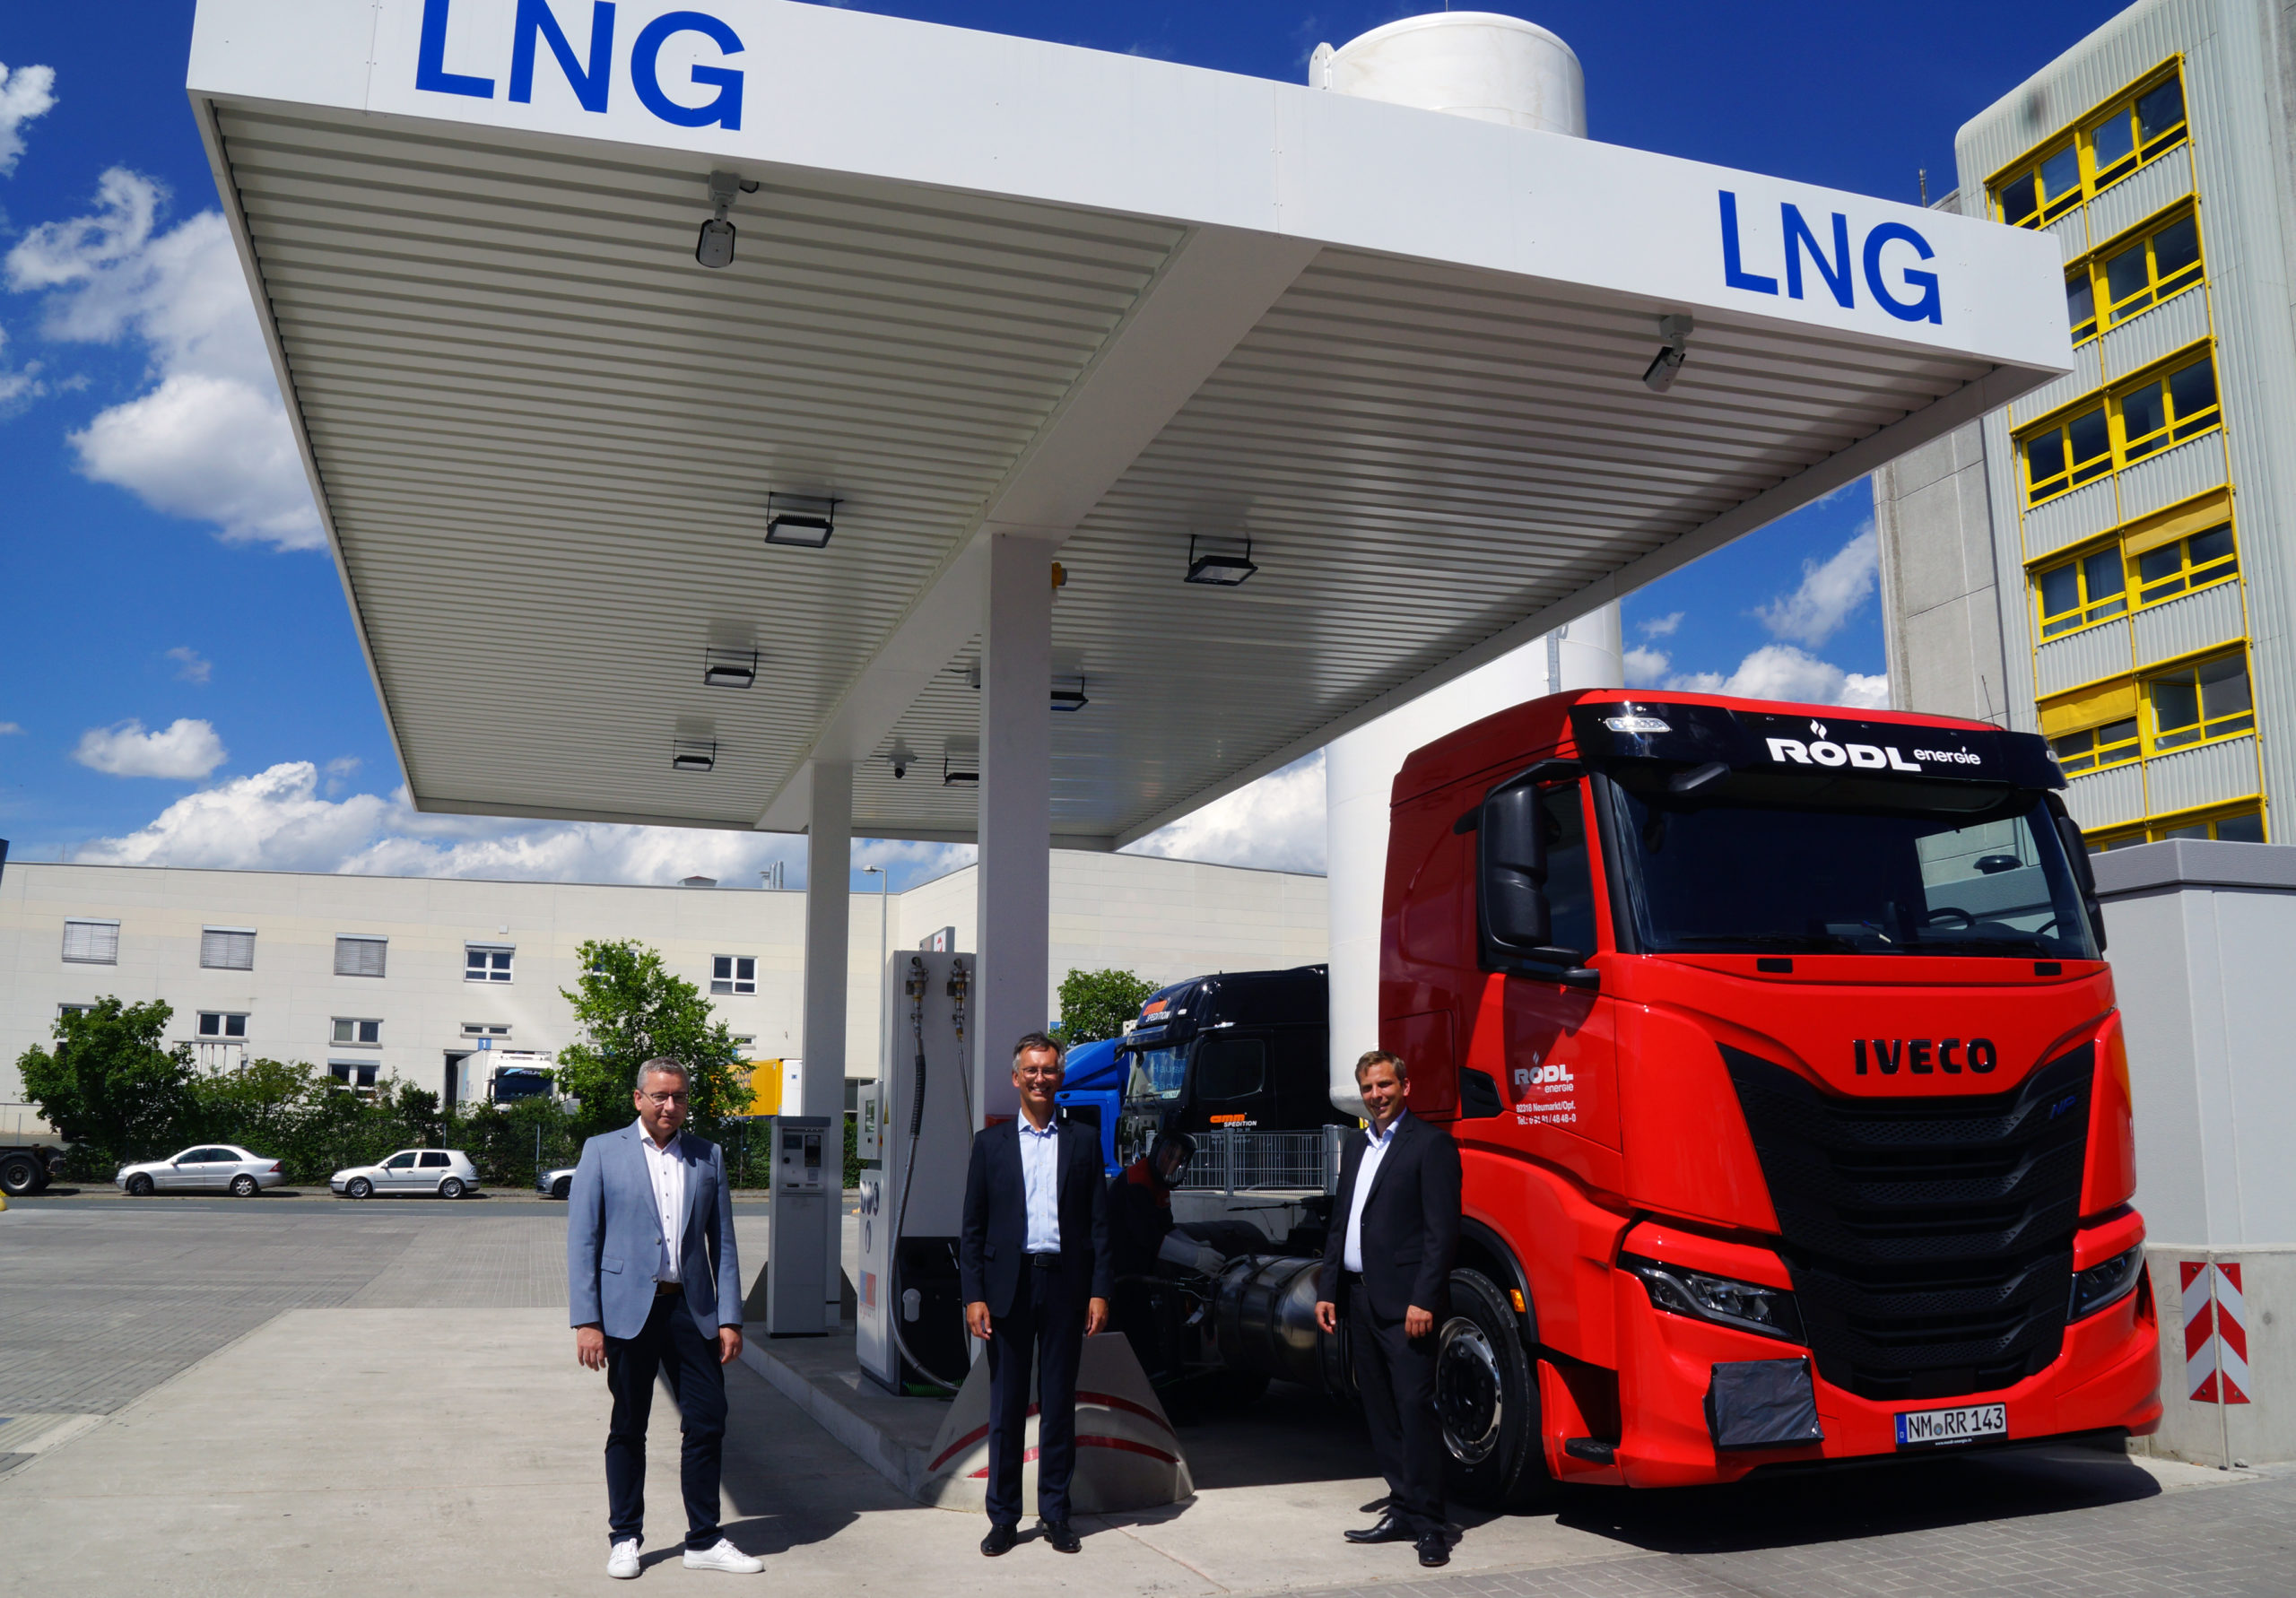 Inauguration of the LNG service station at bayernhafen Nürnberg